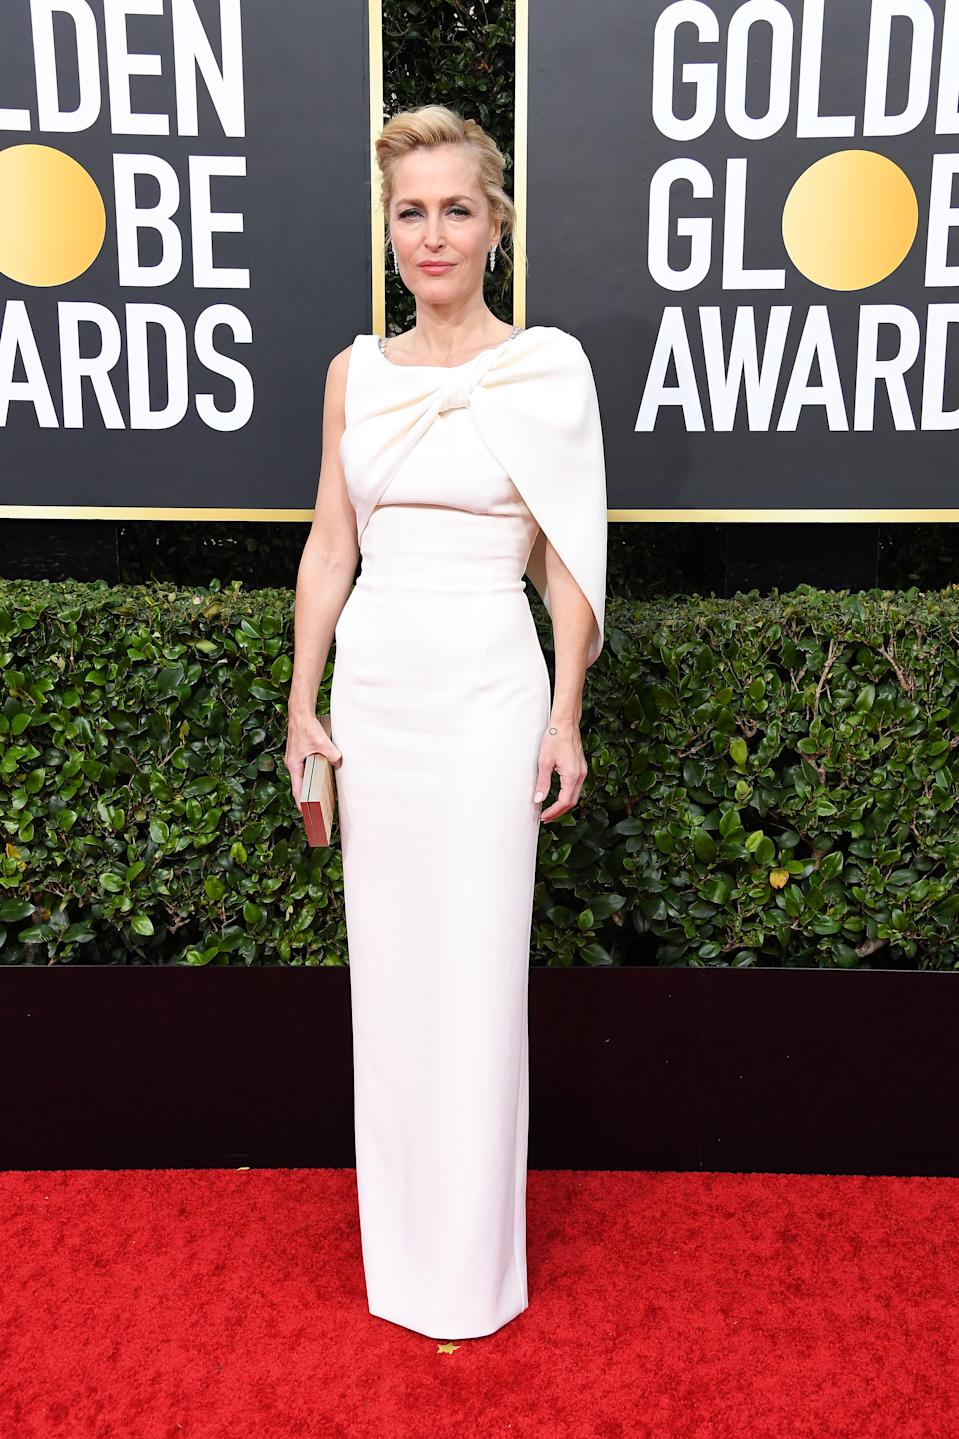 """Anderson arrived to celebrate her Netflix series """"The Crown"""" looking polished in a classic cream asymmetrical gown. (Photo by Steve Granitz/WireImage)"""